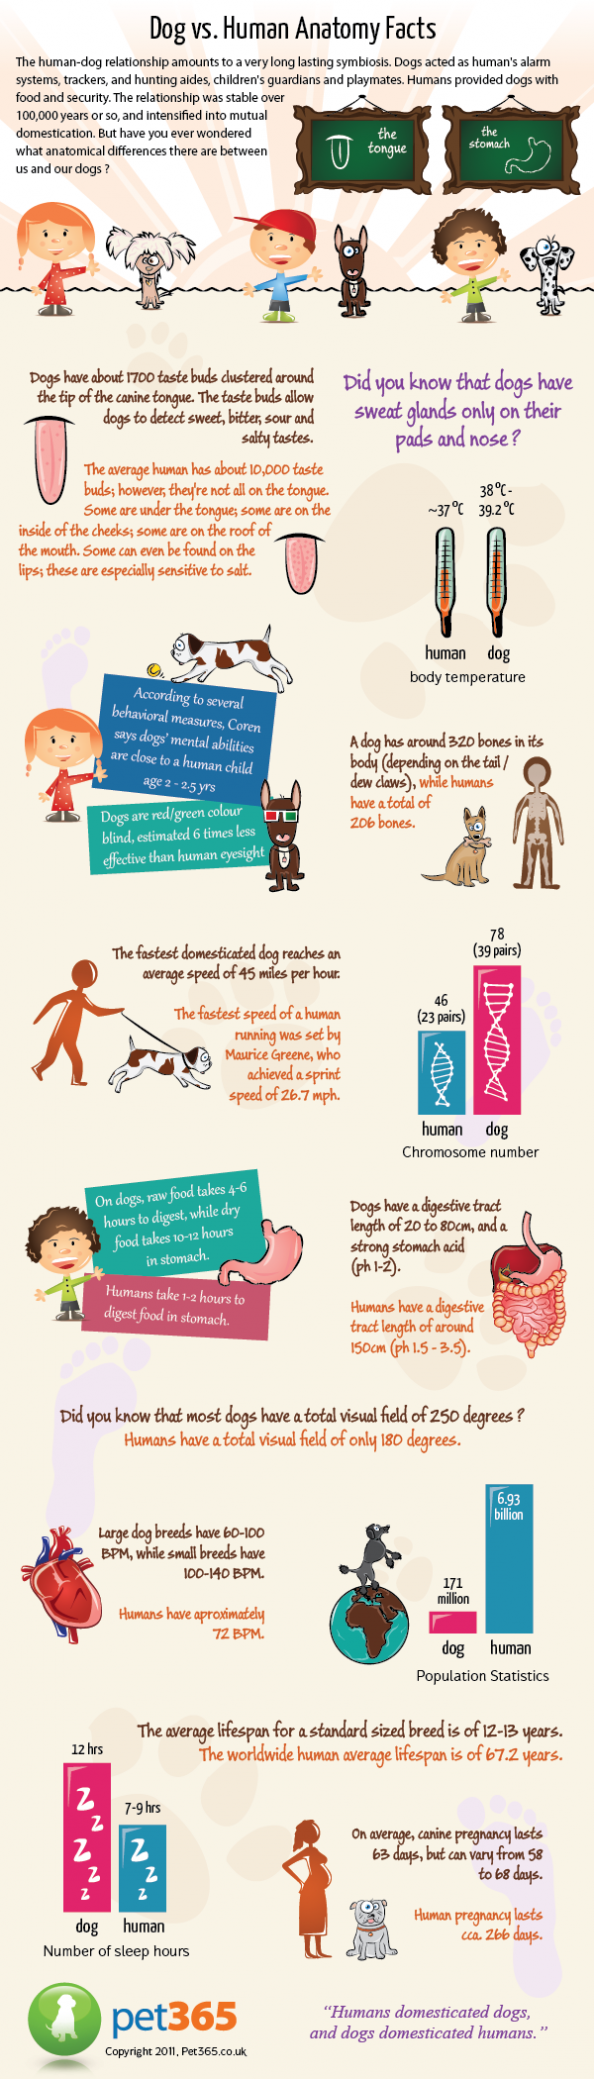 Dogs vs Human Anatomy Facts Infographic